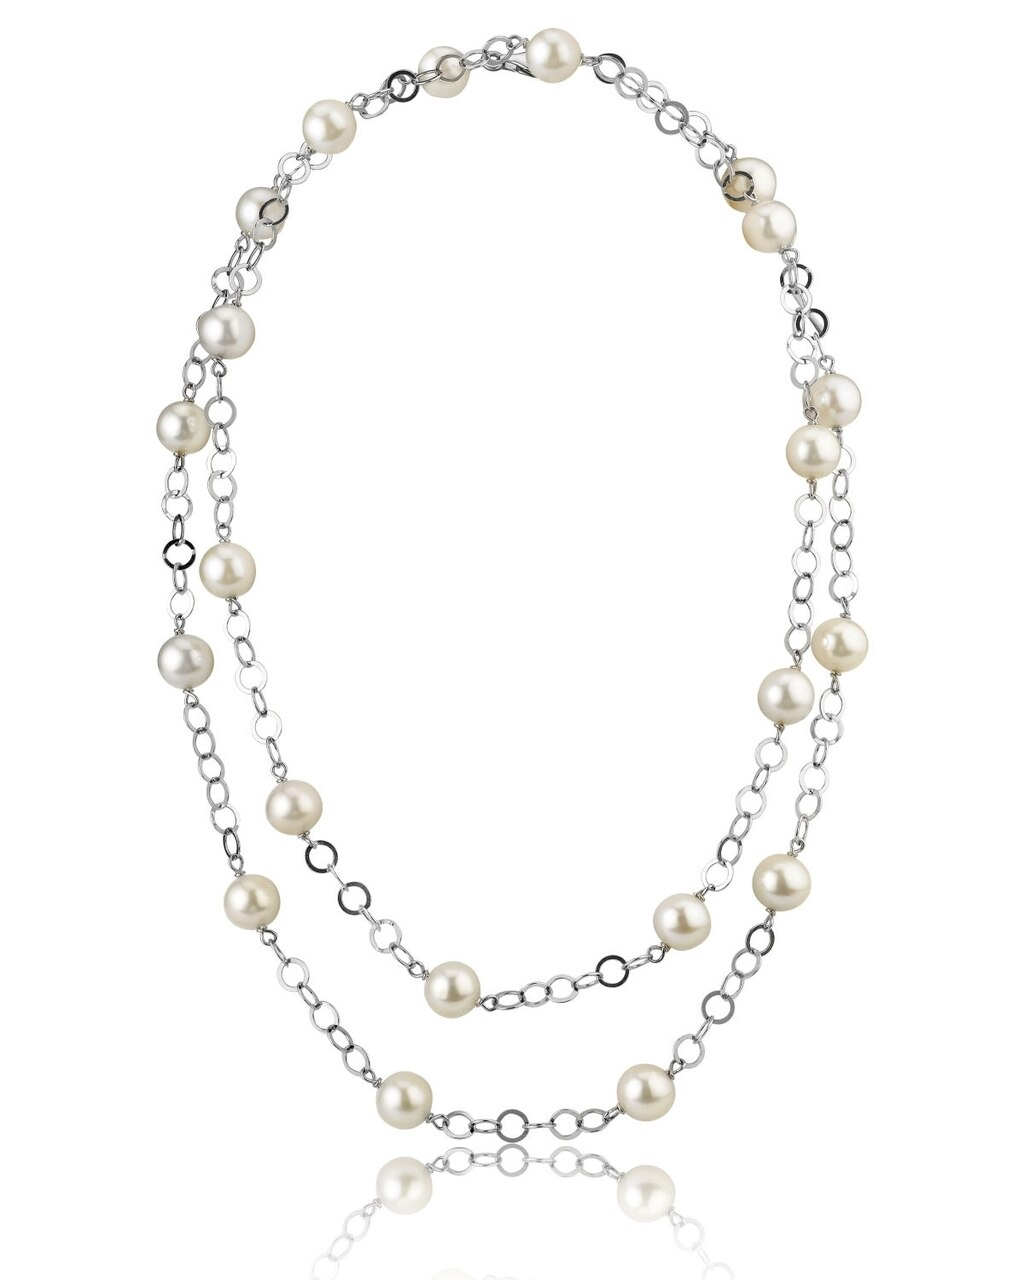 This exquisite necklace features 9.0-10.0mm Freshwater pearls, handpicked for their radiant luster